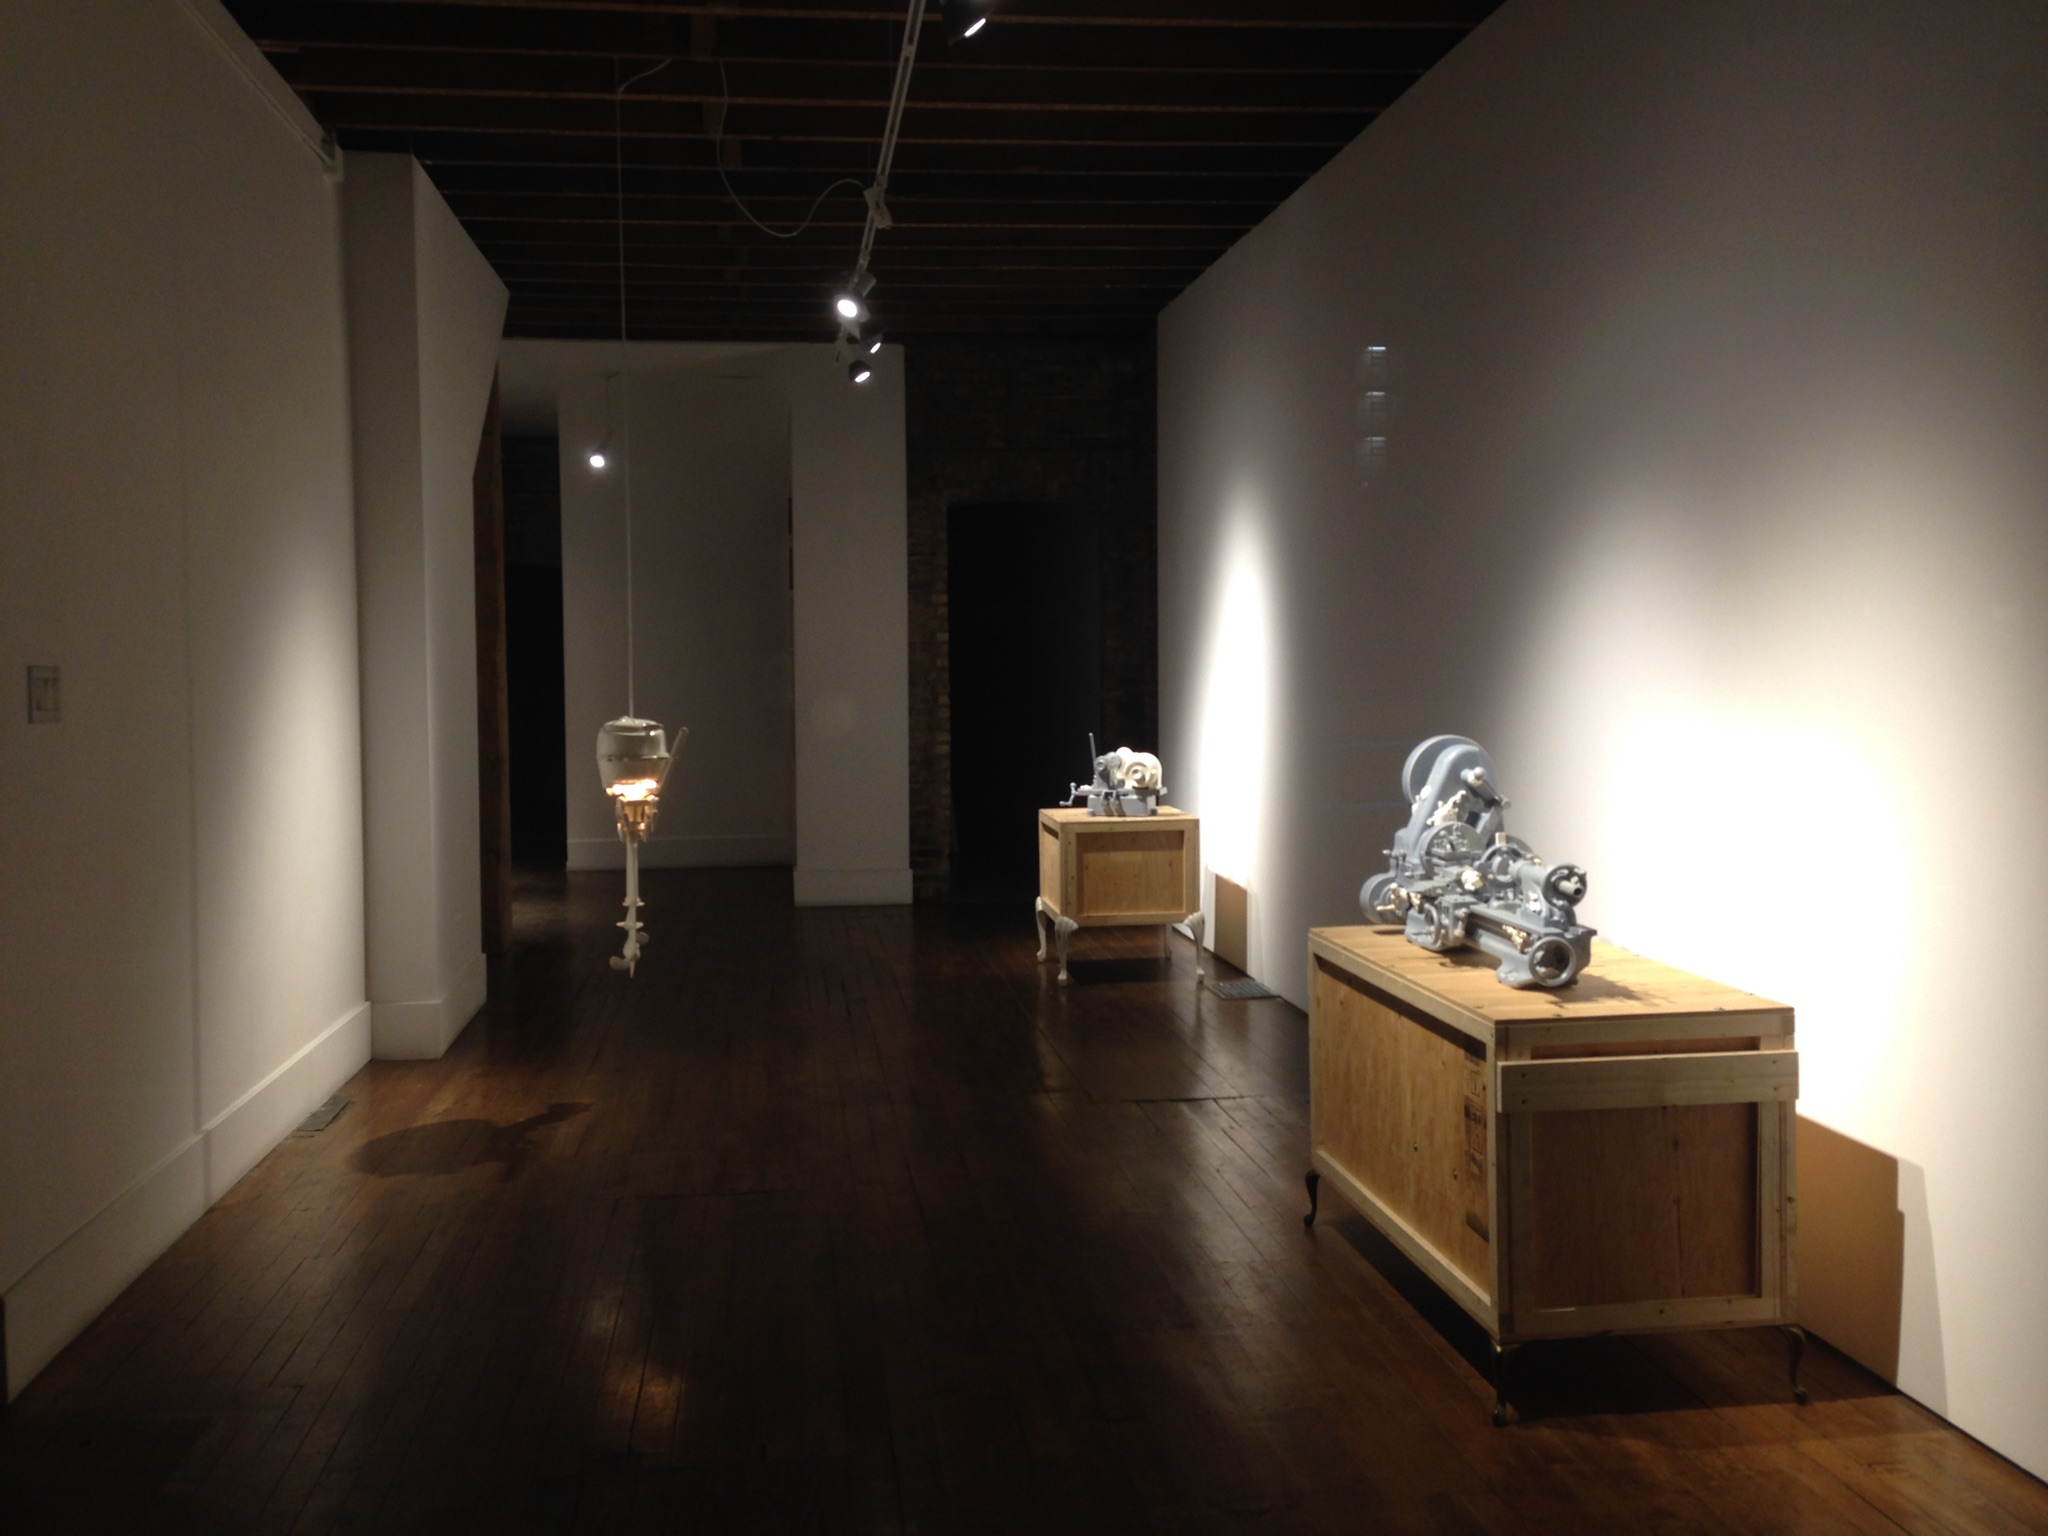 Clint Neufeld,  Pipe Dreams of Madam Recamier , General Hardware Contemporary, organized by the Koffler Center for the Arts, 2013, Toronto, ON